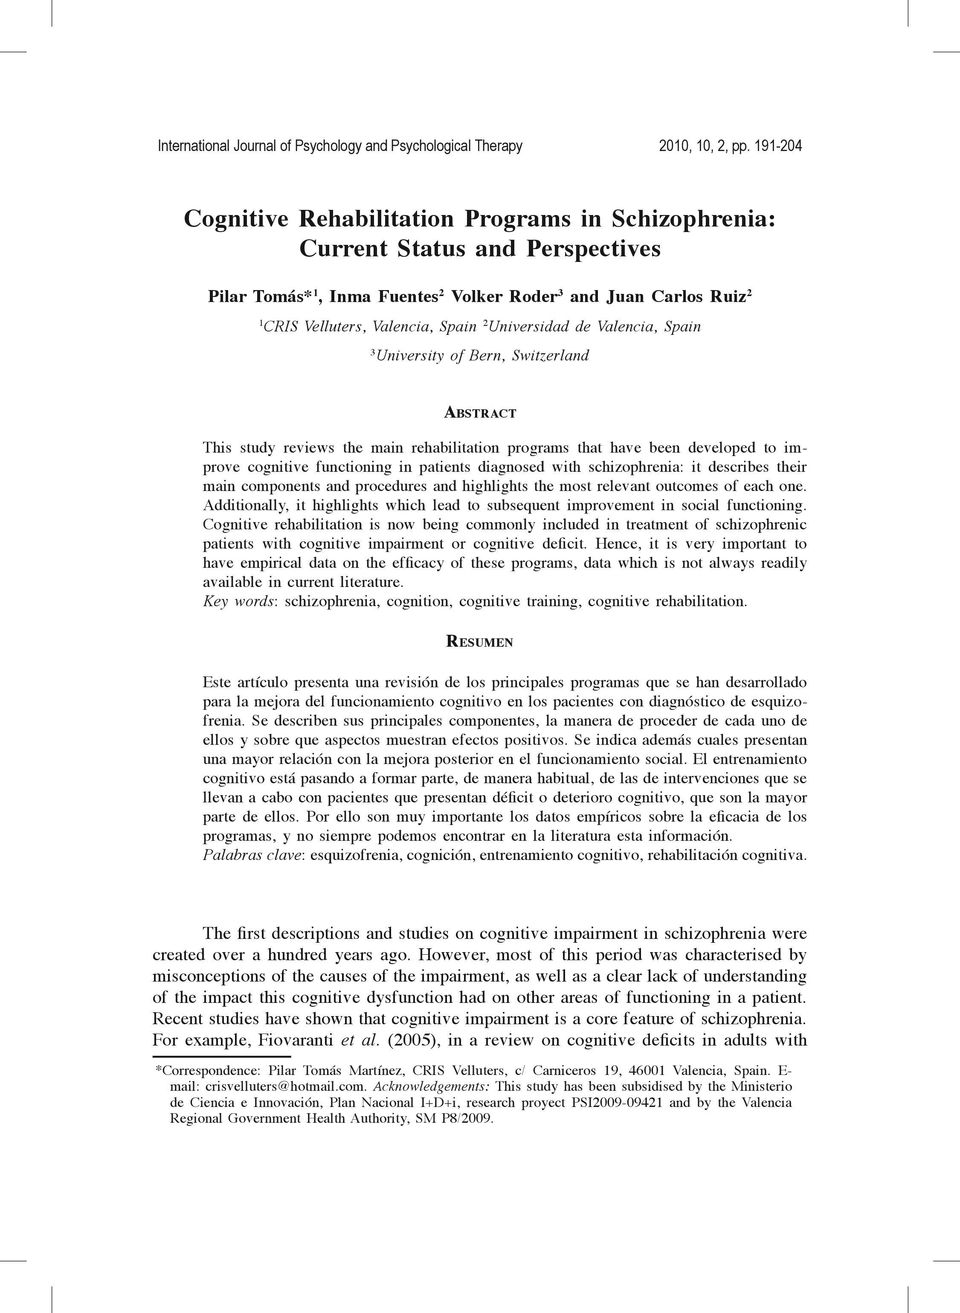 Universidad de Valencia, Spain 3 University of Bern, Switzerland Abstract This study reviews the main rehabilitation programs that have been developed to improve cognitive functioning in patients